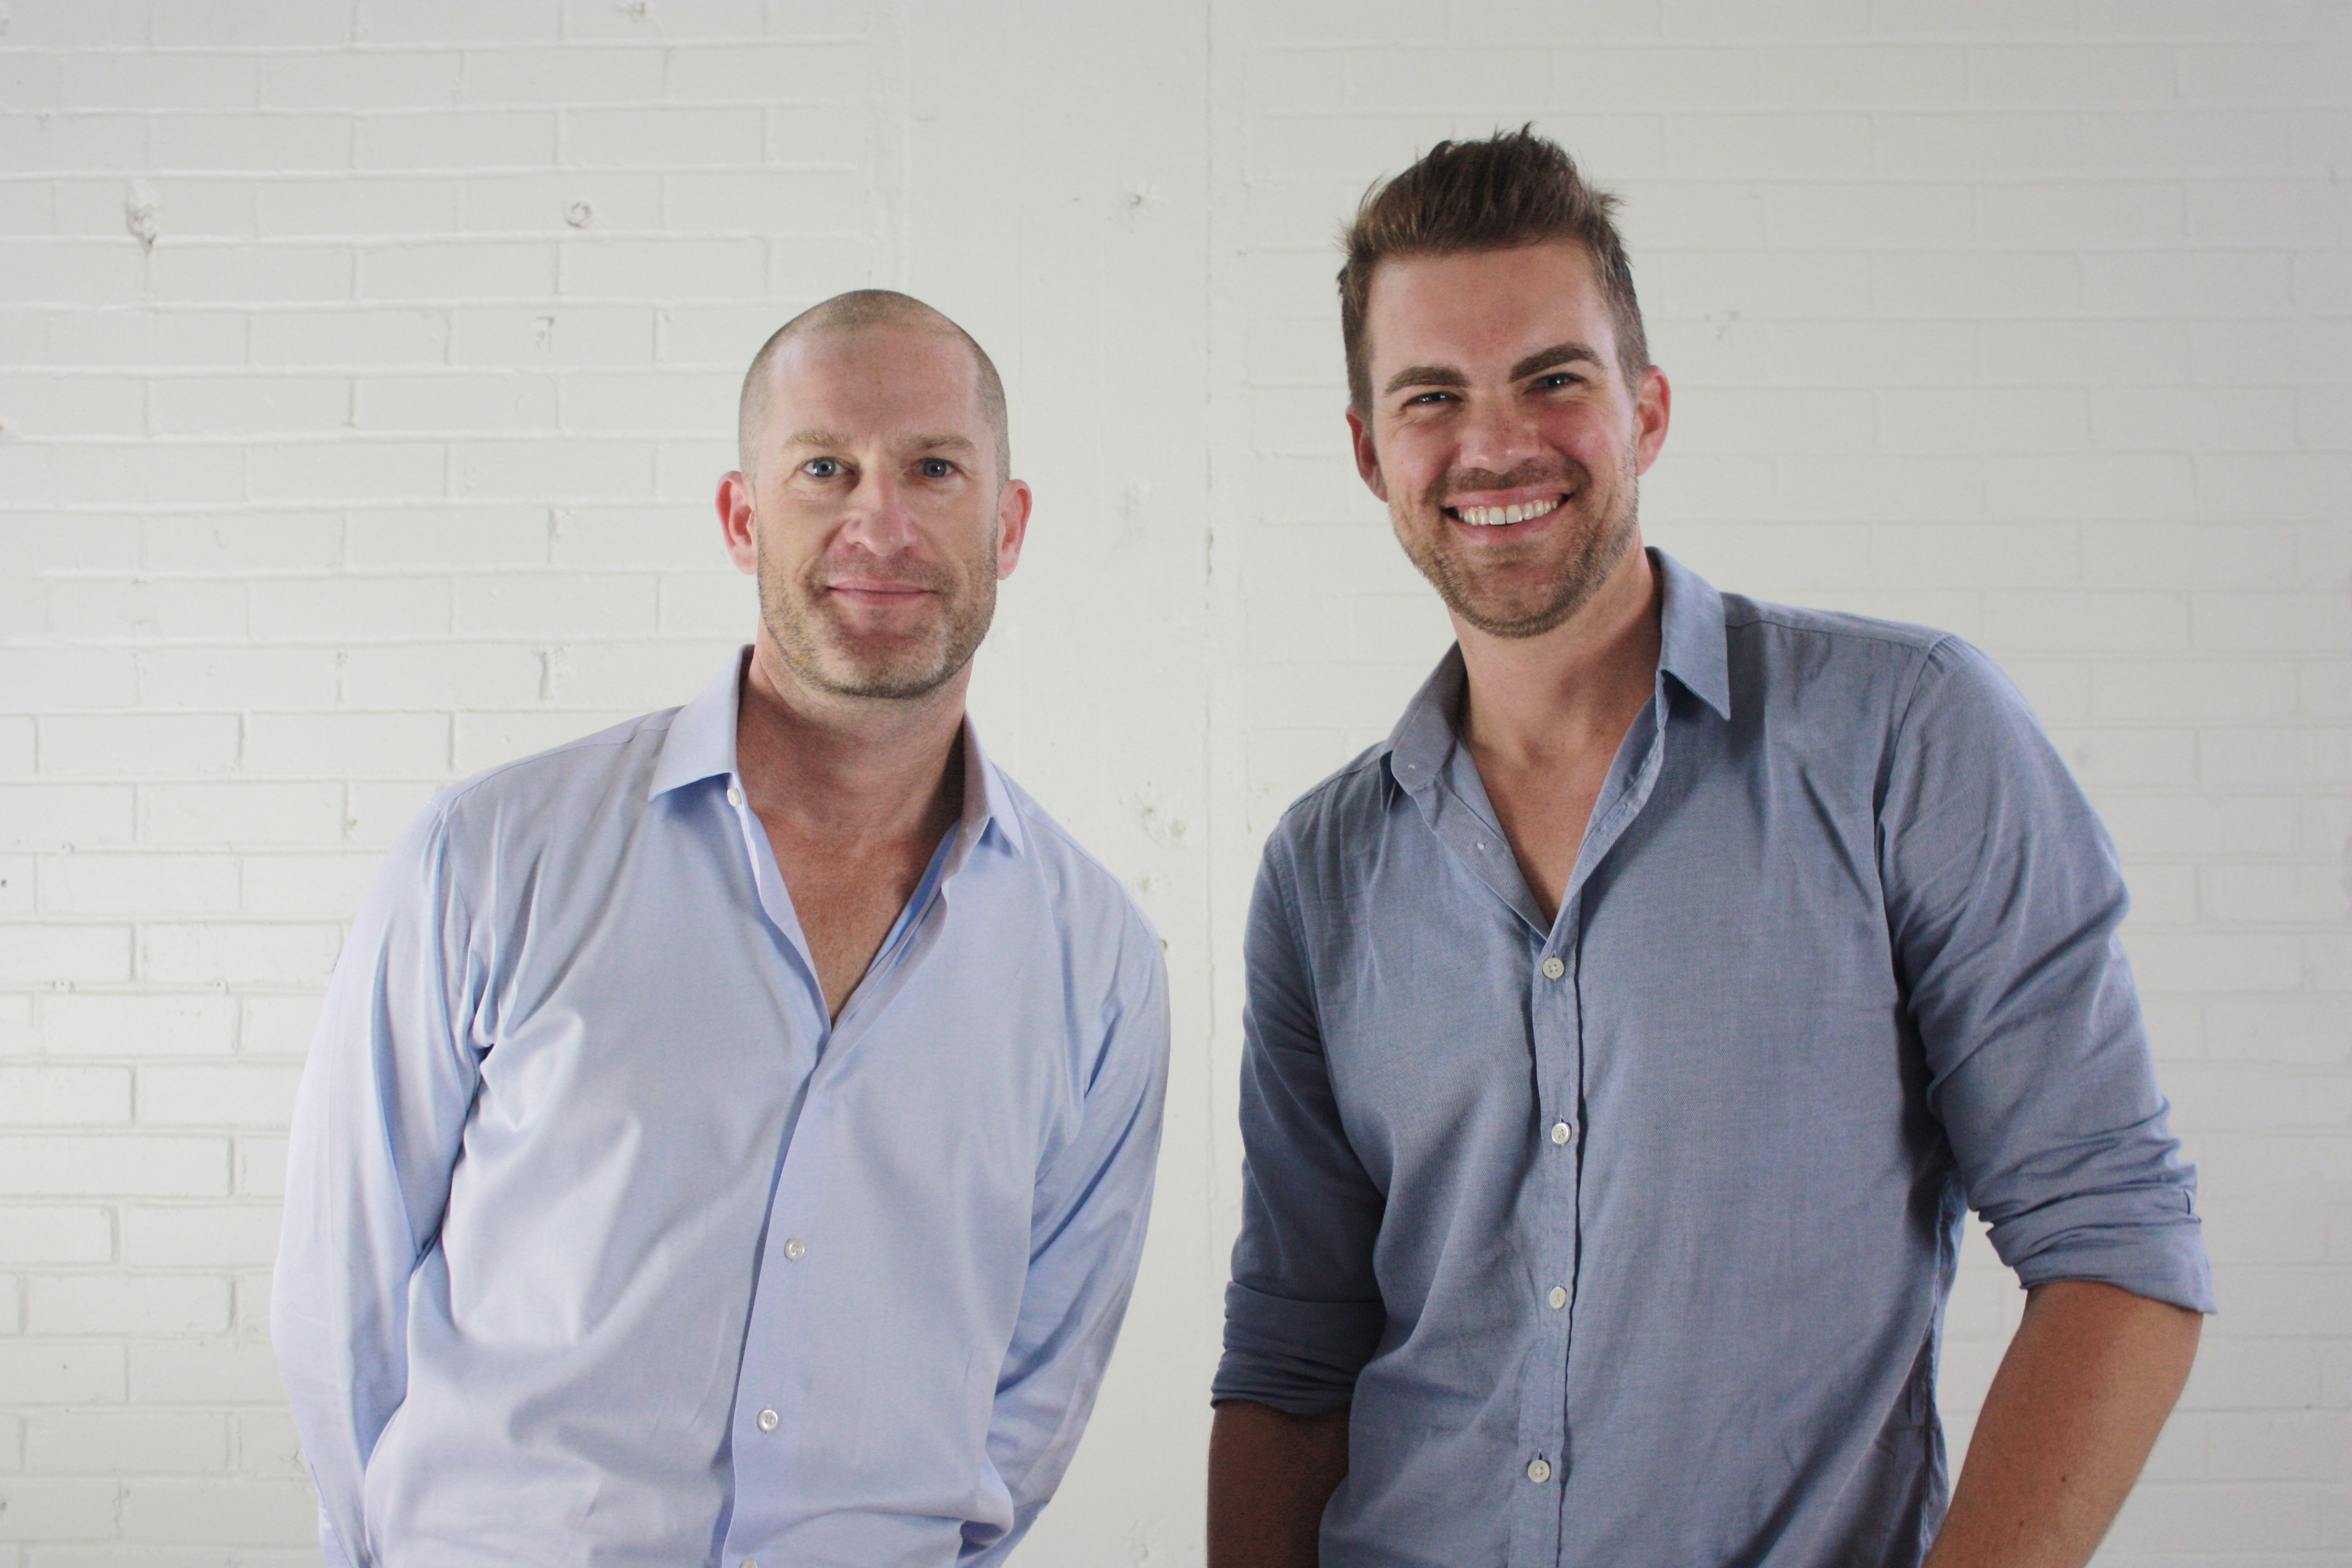 Twyla co-founder and CEO Matt Randall (left) and Twyla COO Justin Halloran (right) (Photo: Business Wire)